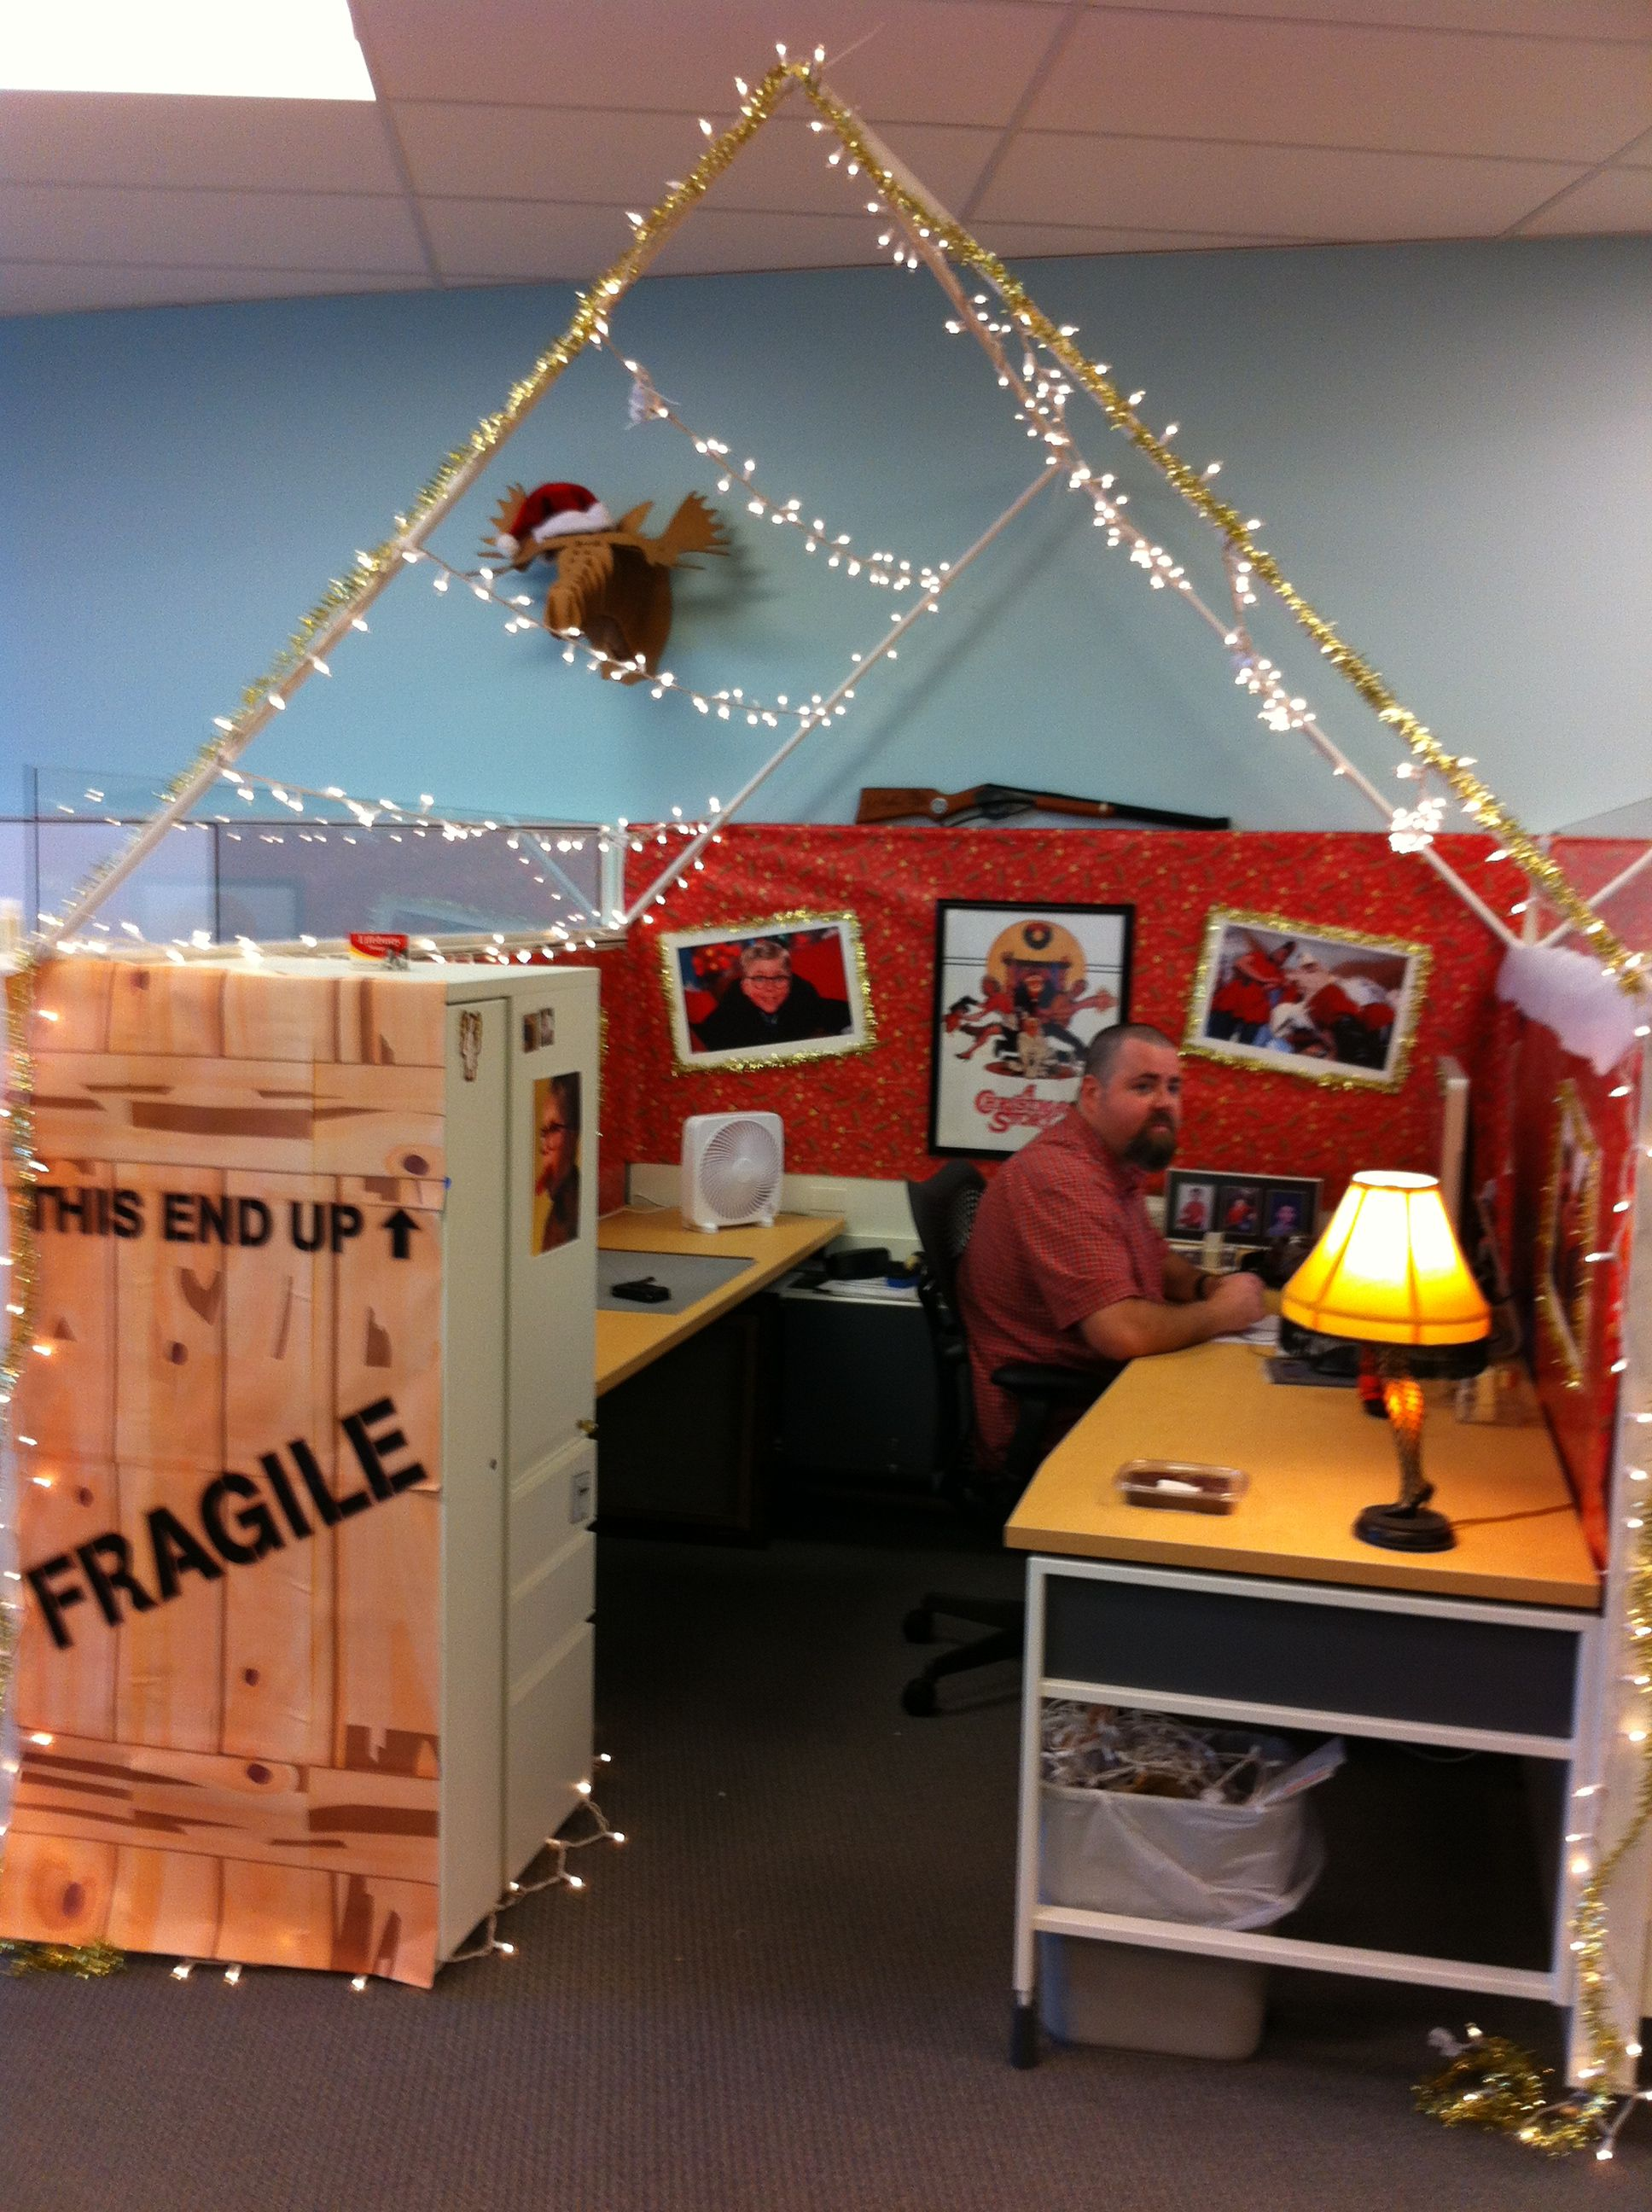 during our holiday cube decorating contest the winner decked his out in full a christmas story glory complete with a leg lamp - Christmas Story Decorations